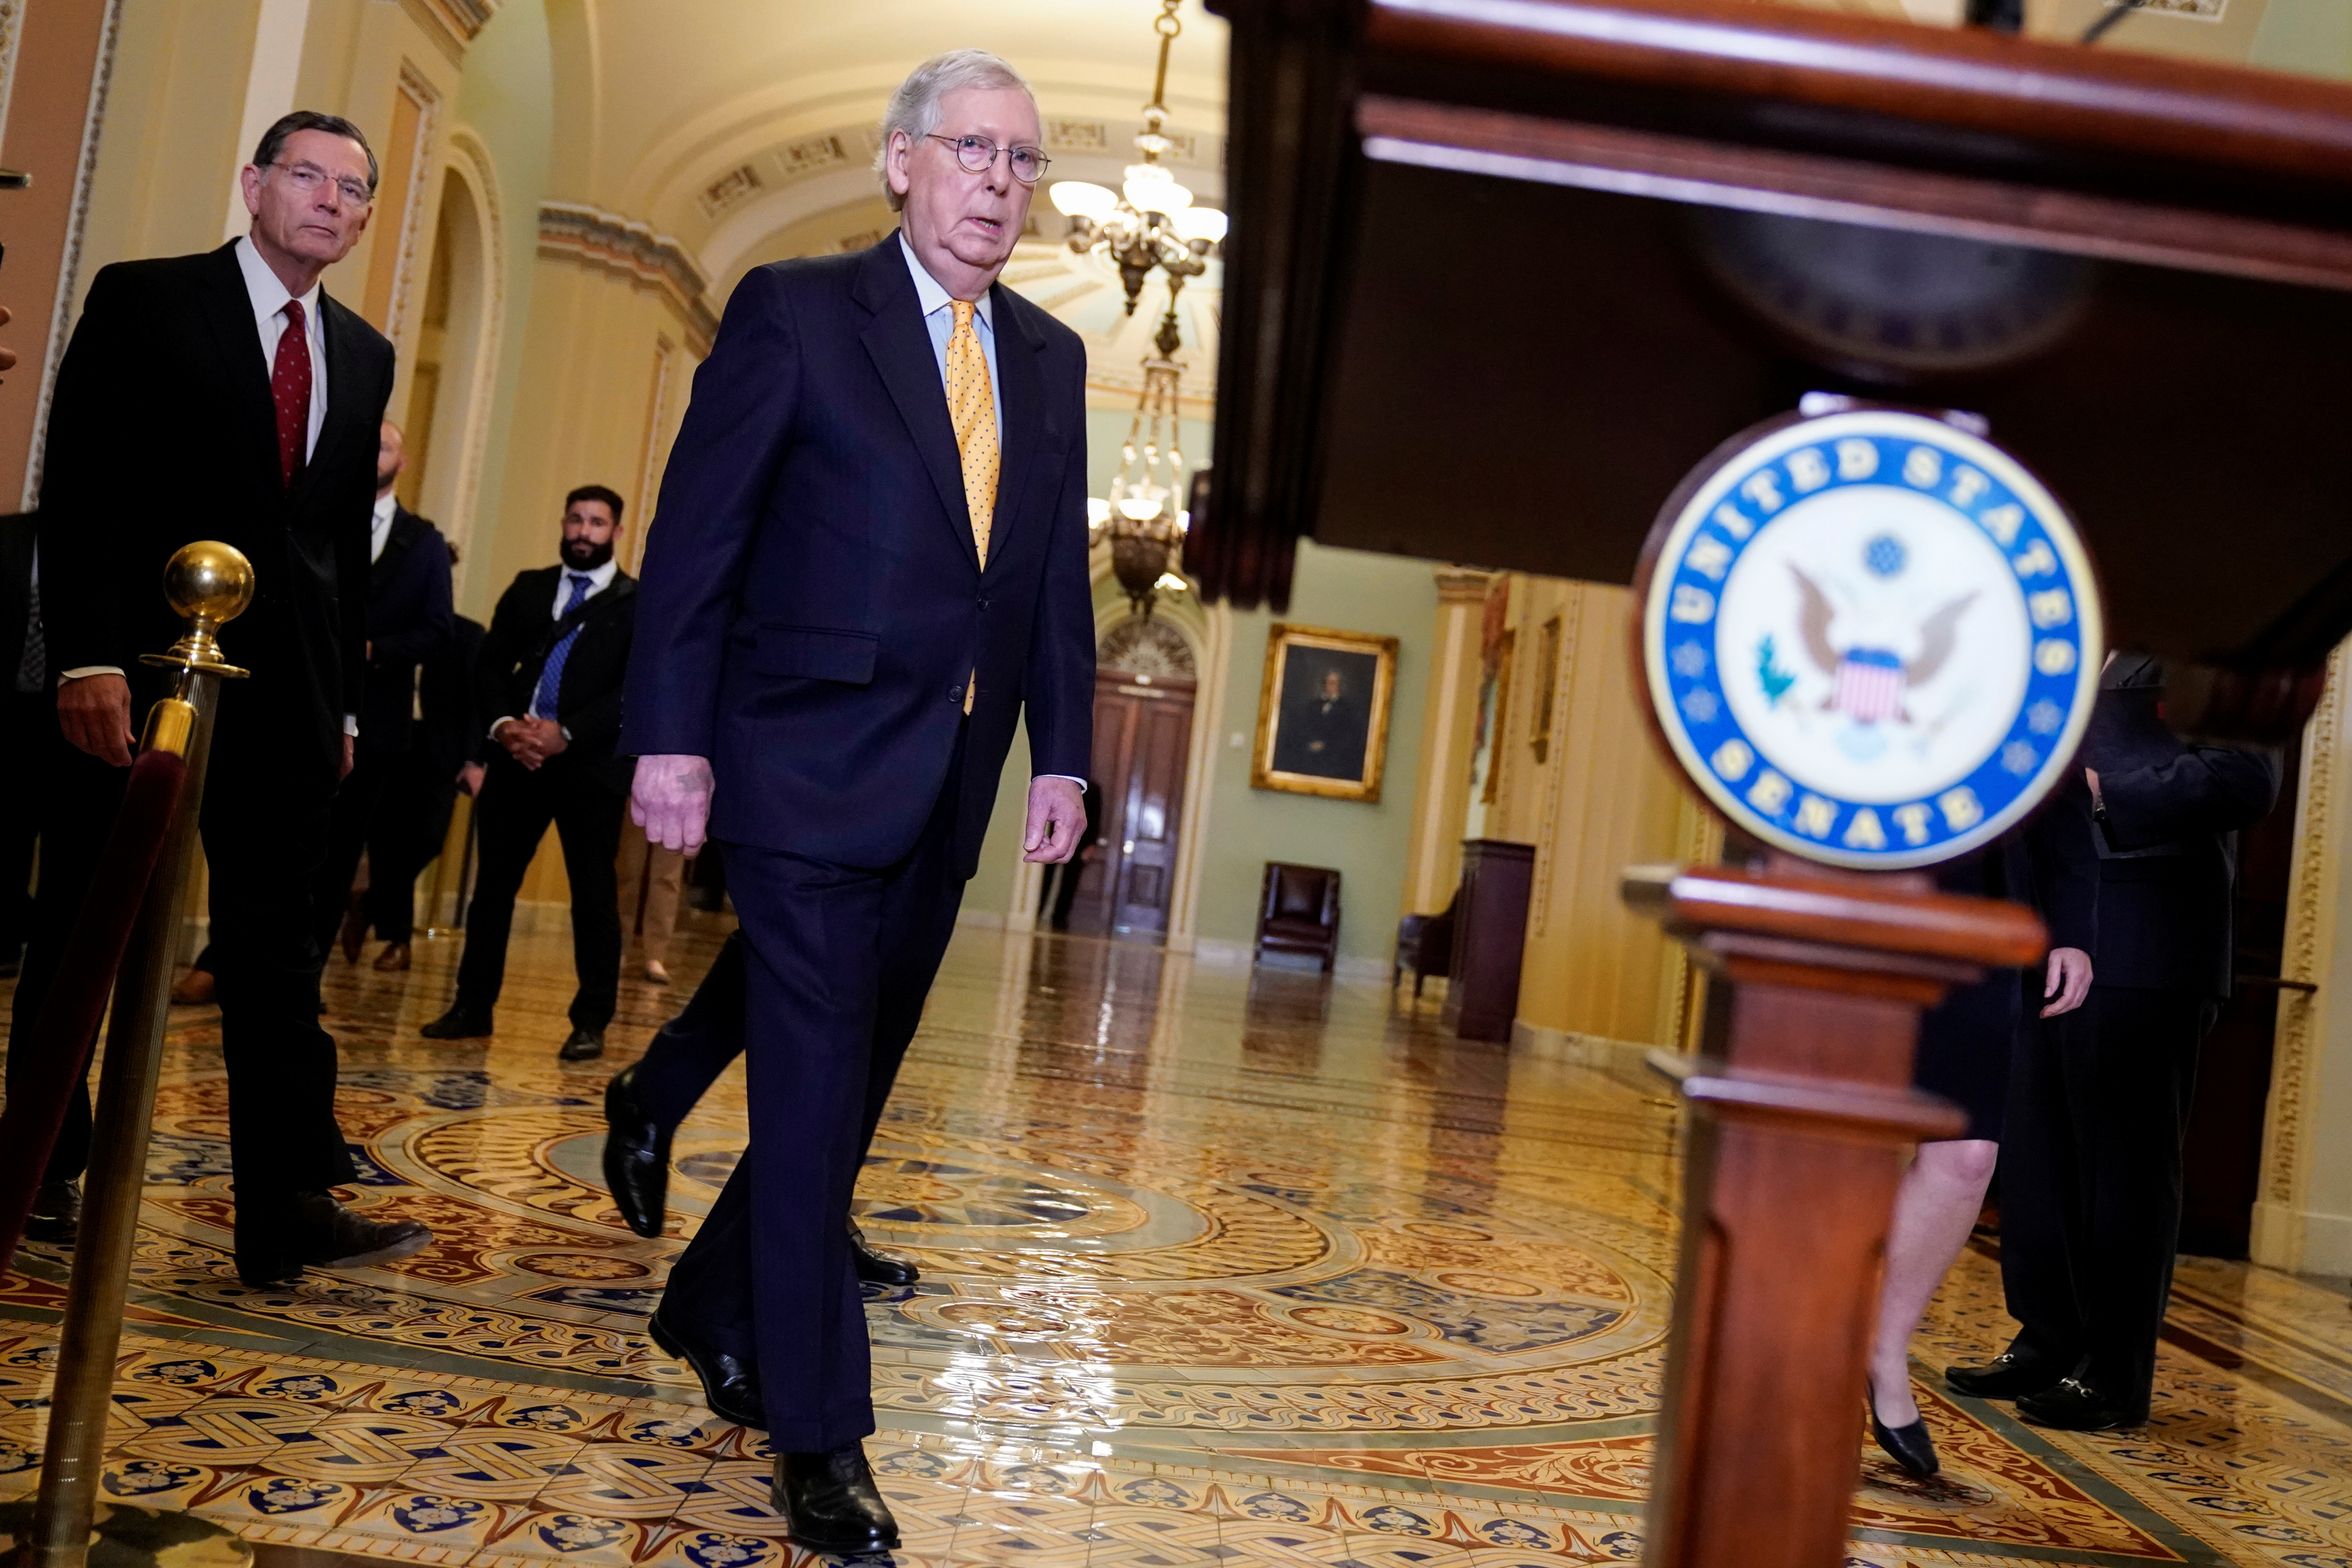 Senate Minority Leader Mitch McConnell (R-KY) arrives to speak after the Republican policy luncheon on Capitol Hill in Washington, U.S., July 27, 2021.      REUTERS/Joshua Roberts